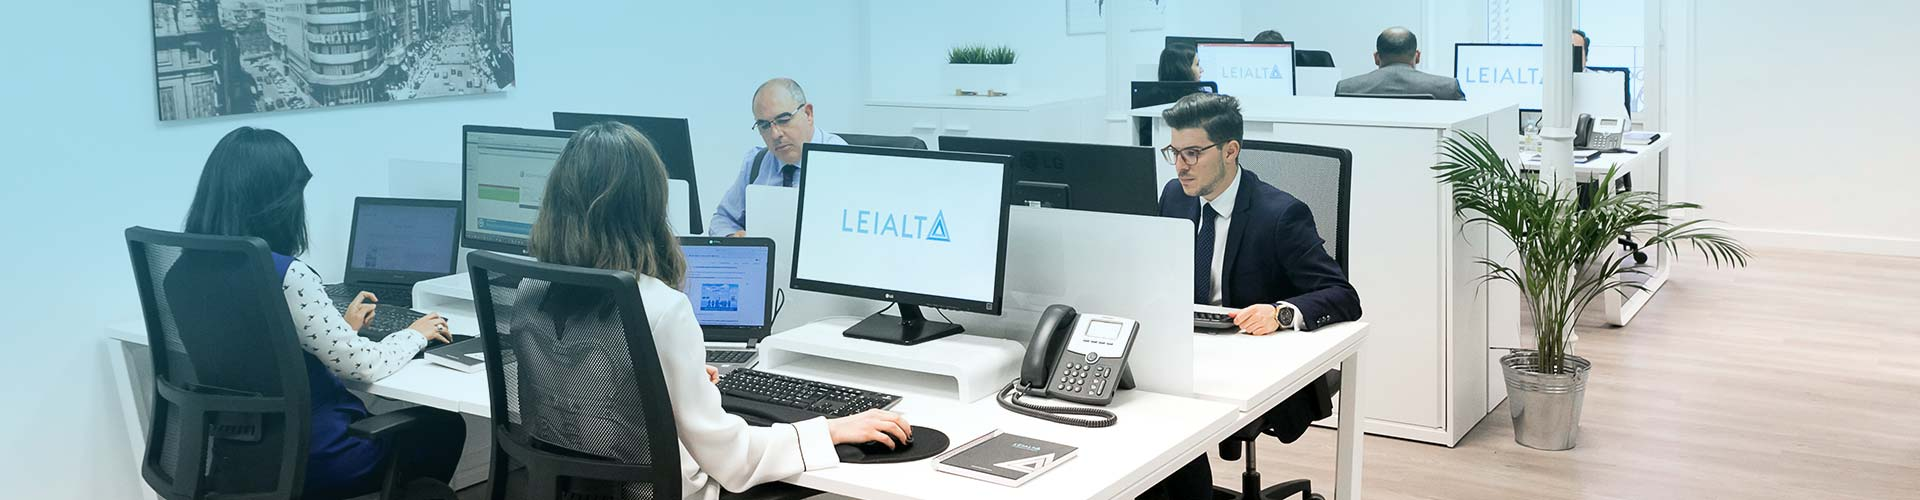 Meet with Leialta all the Business Consulting for your cmpanyo